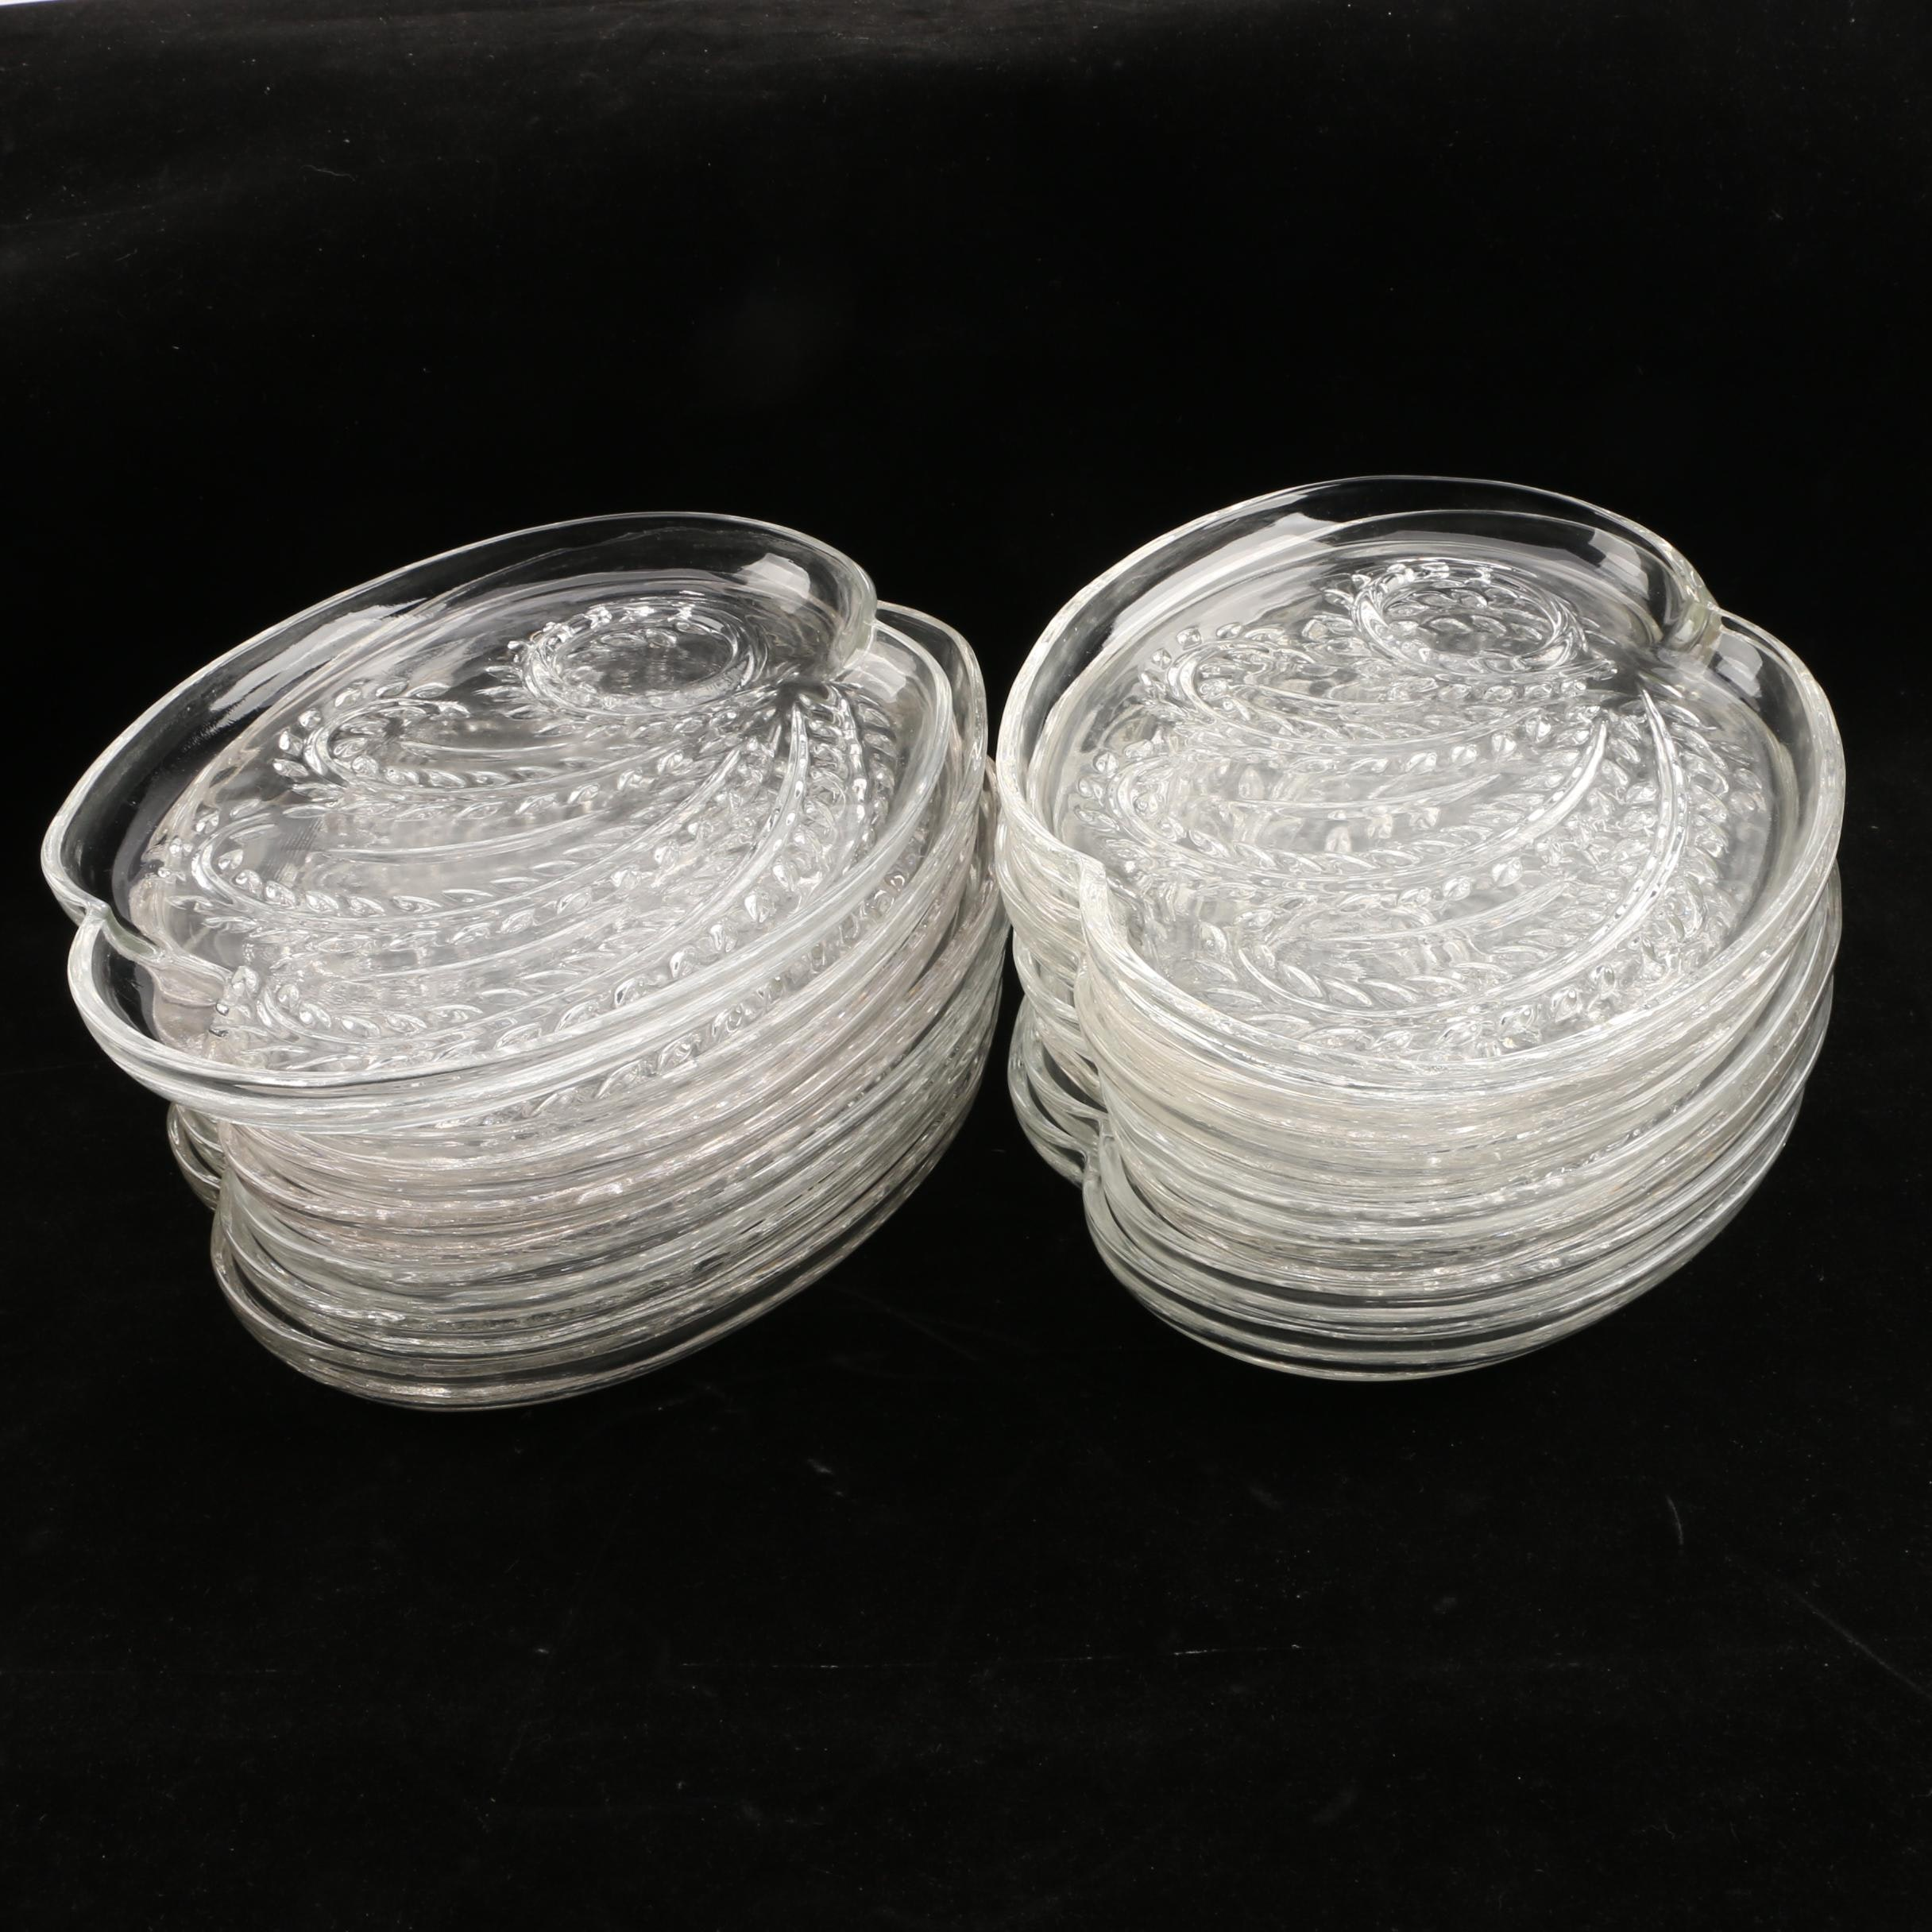 Collection of Pressed Glass Cocktail Plates